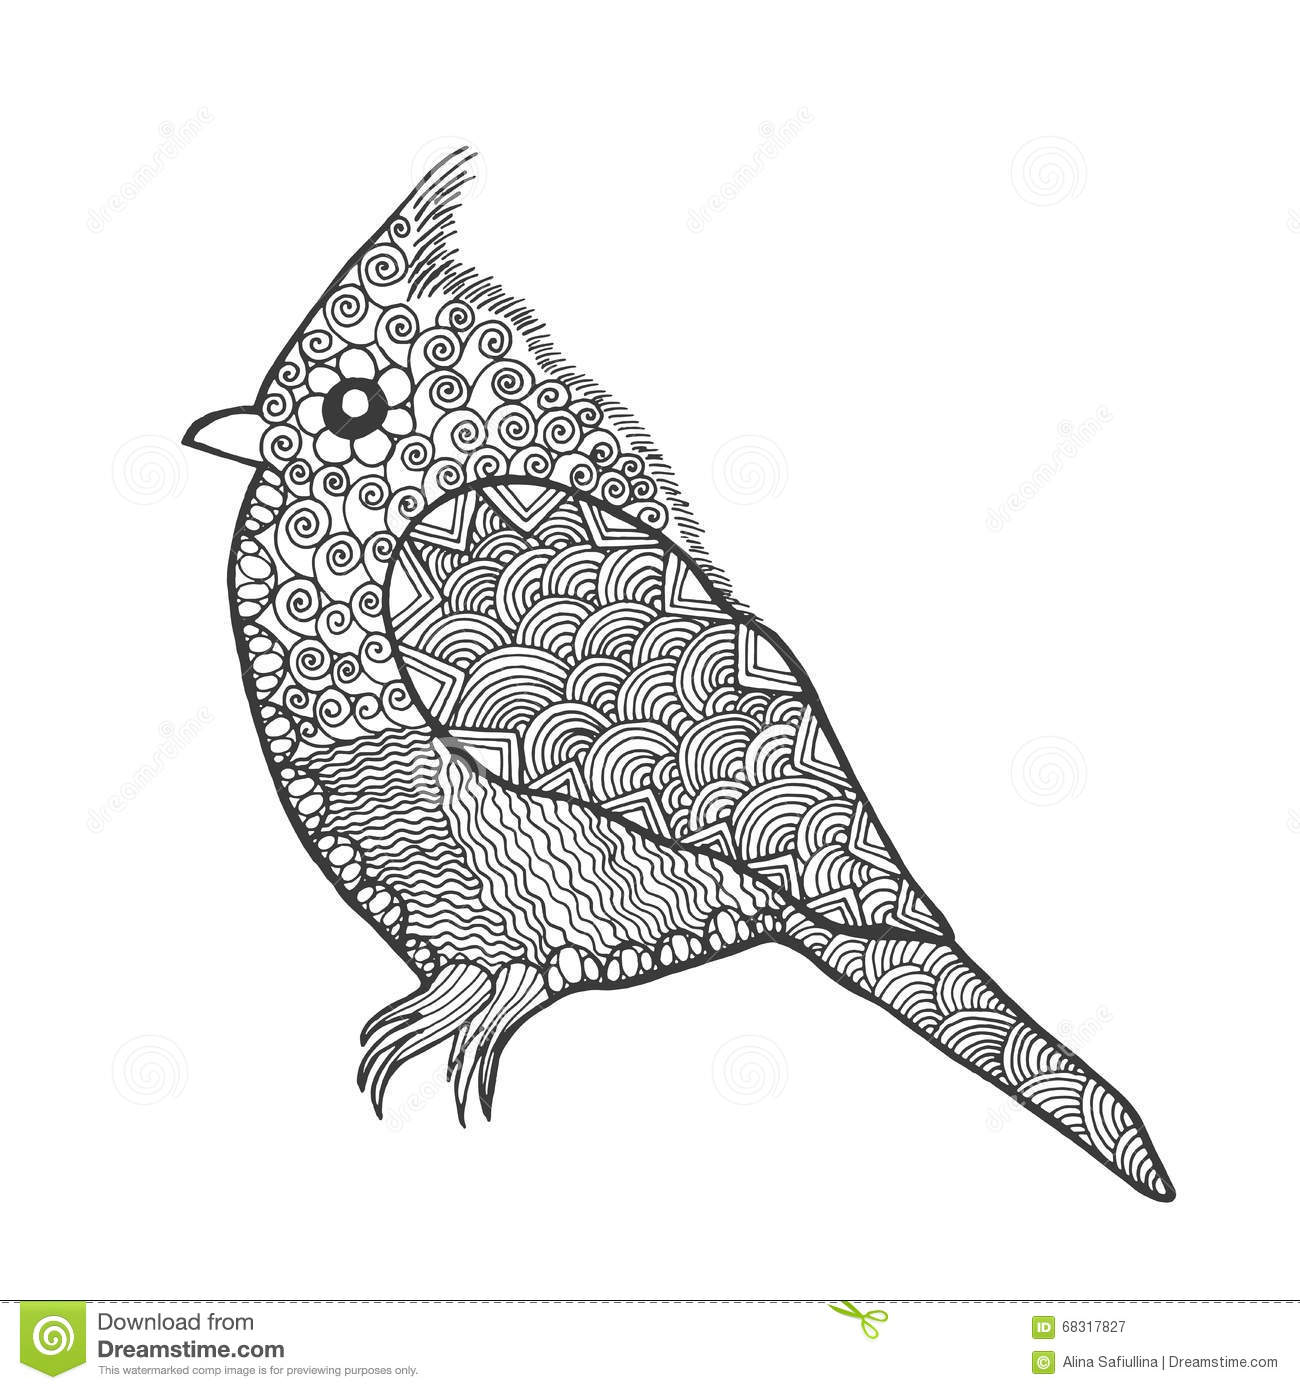 Zentangle gestileerde vogel